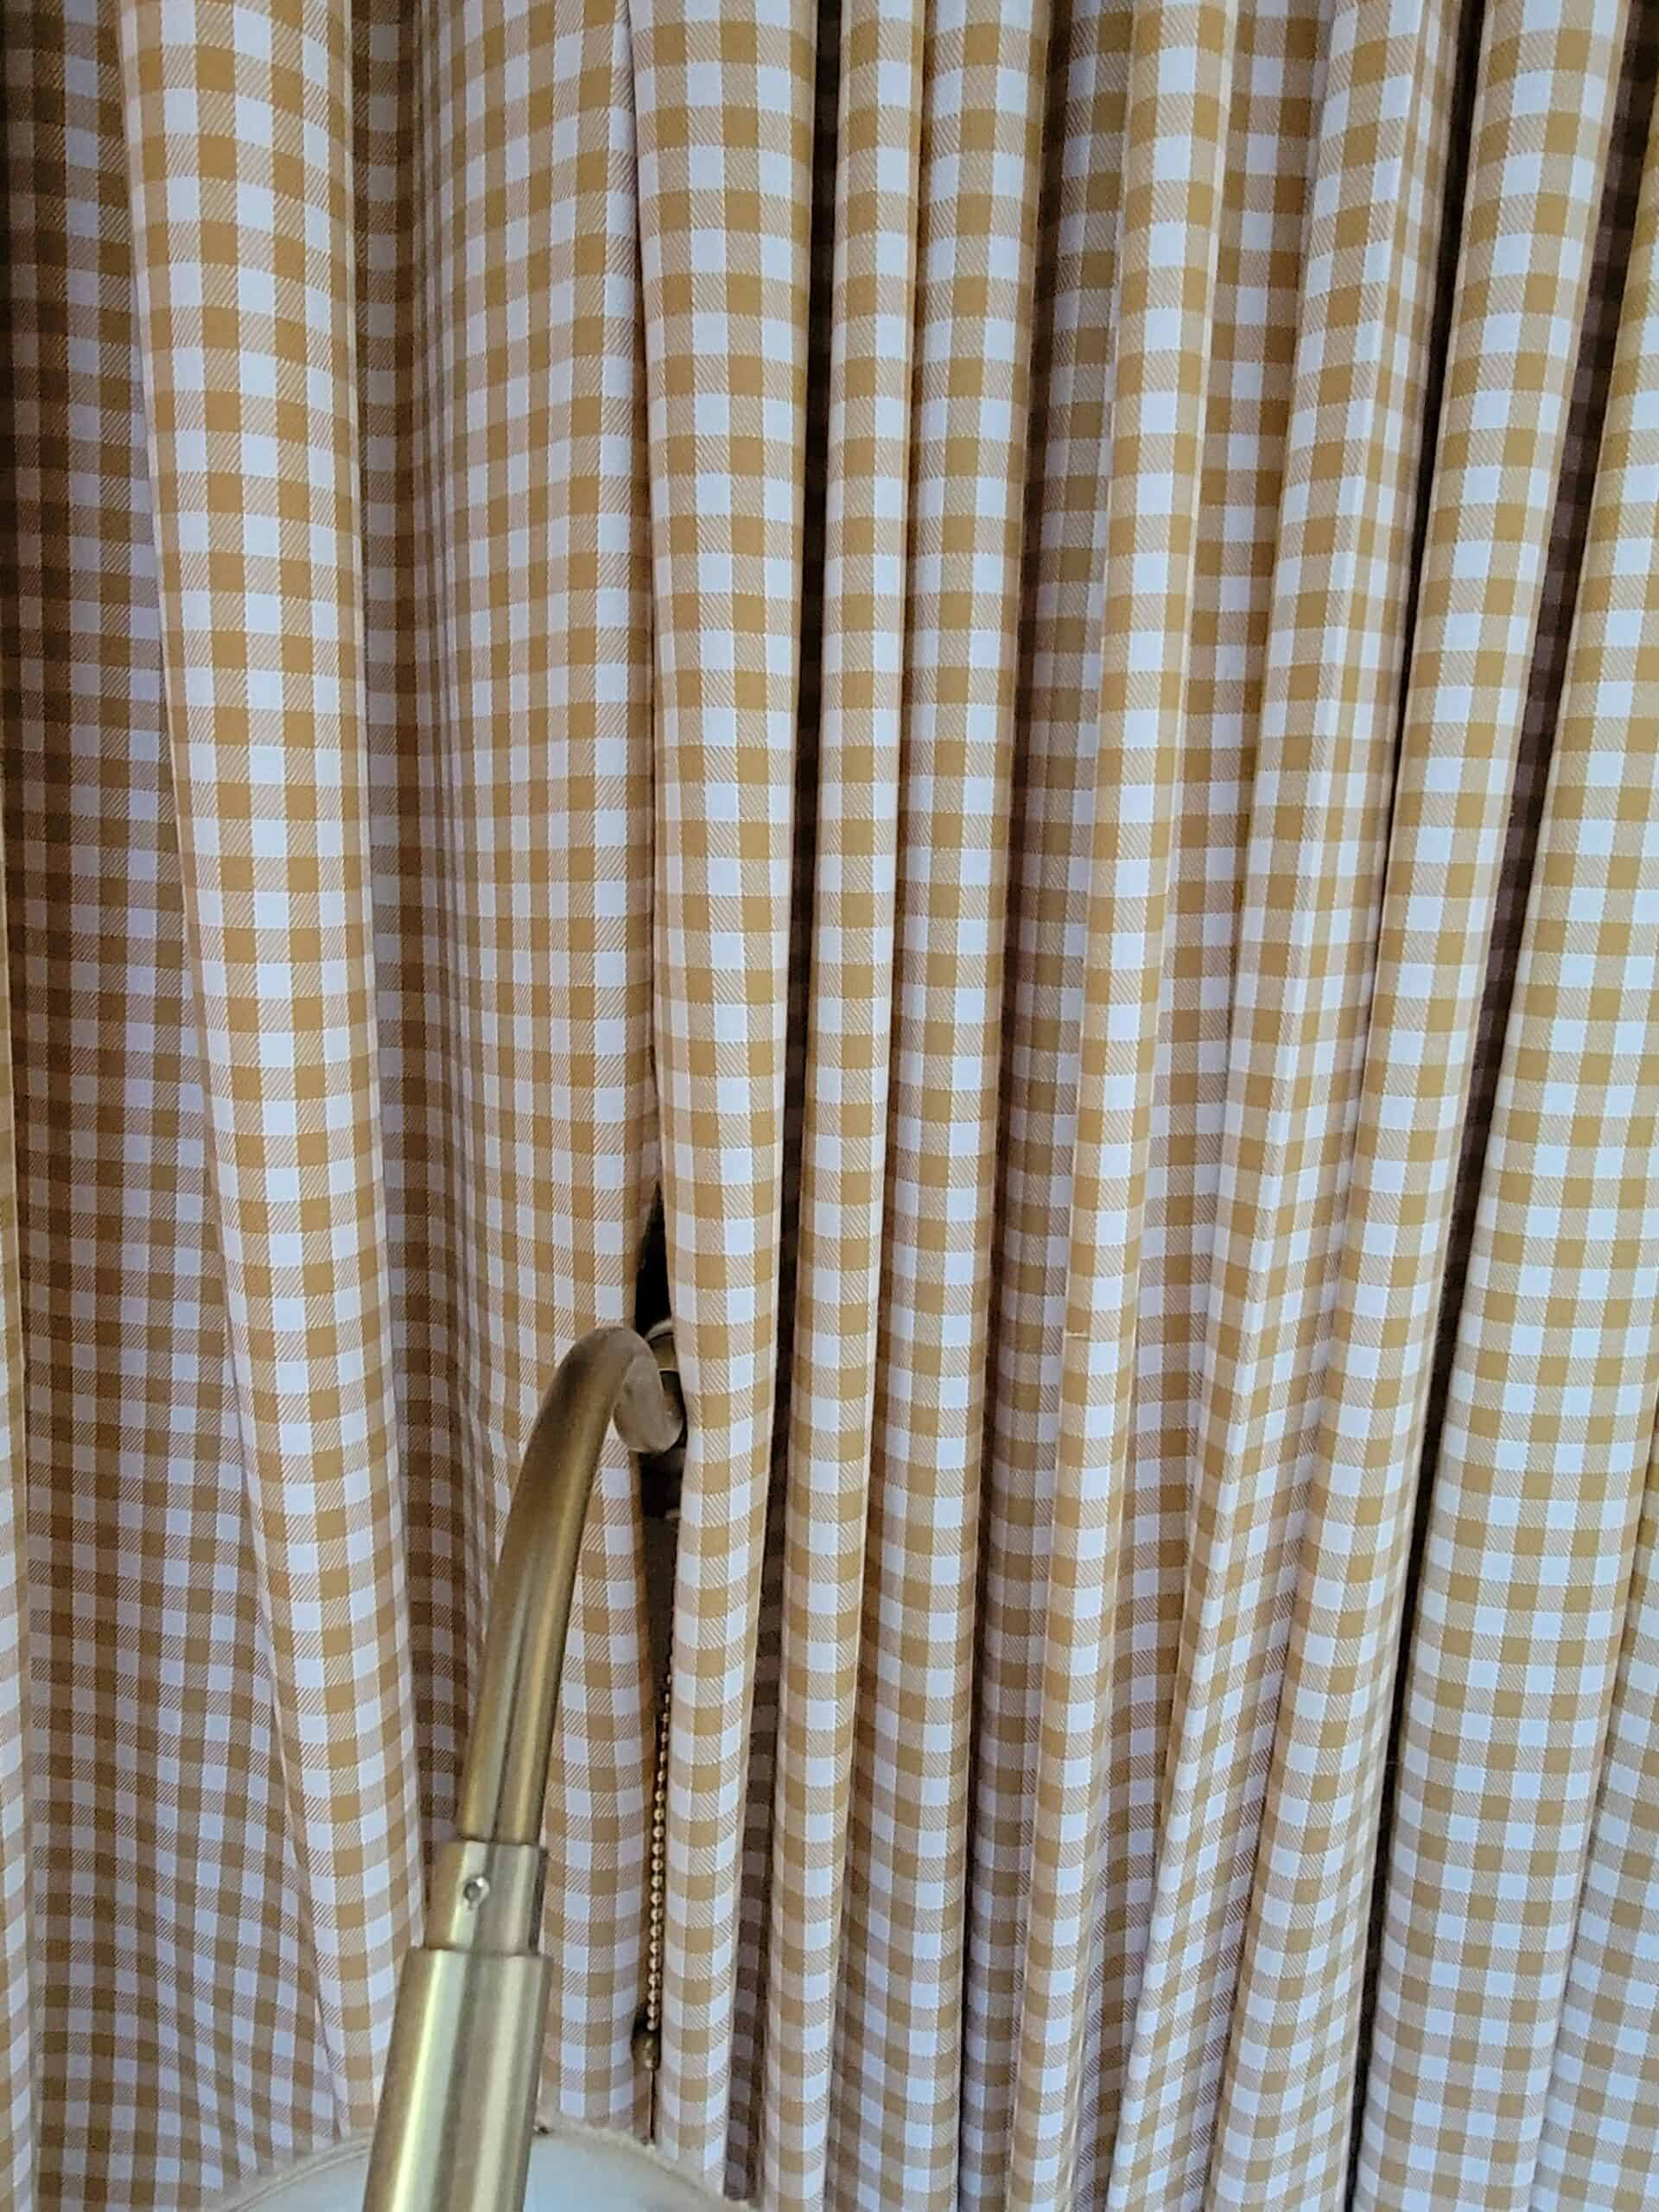 gingham fabric surrounding a brass sconce